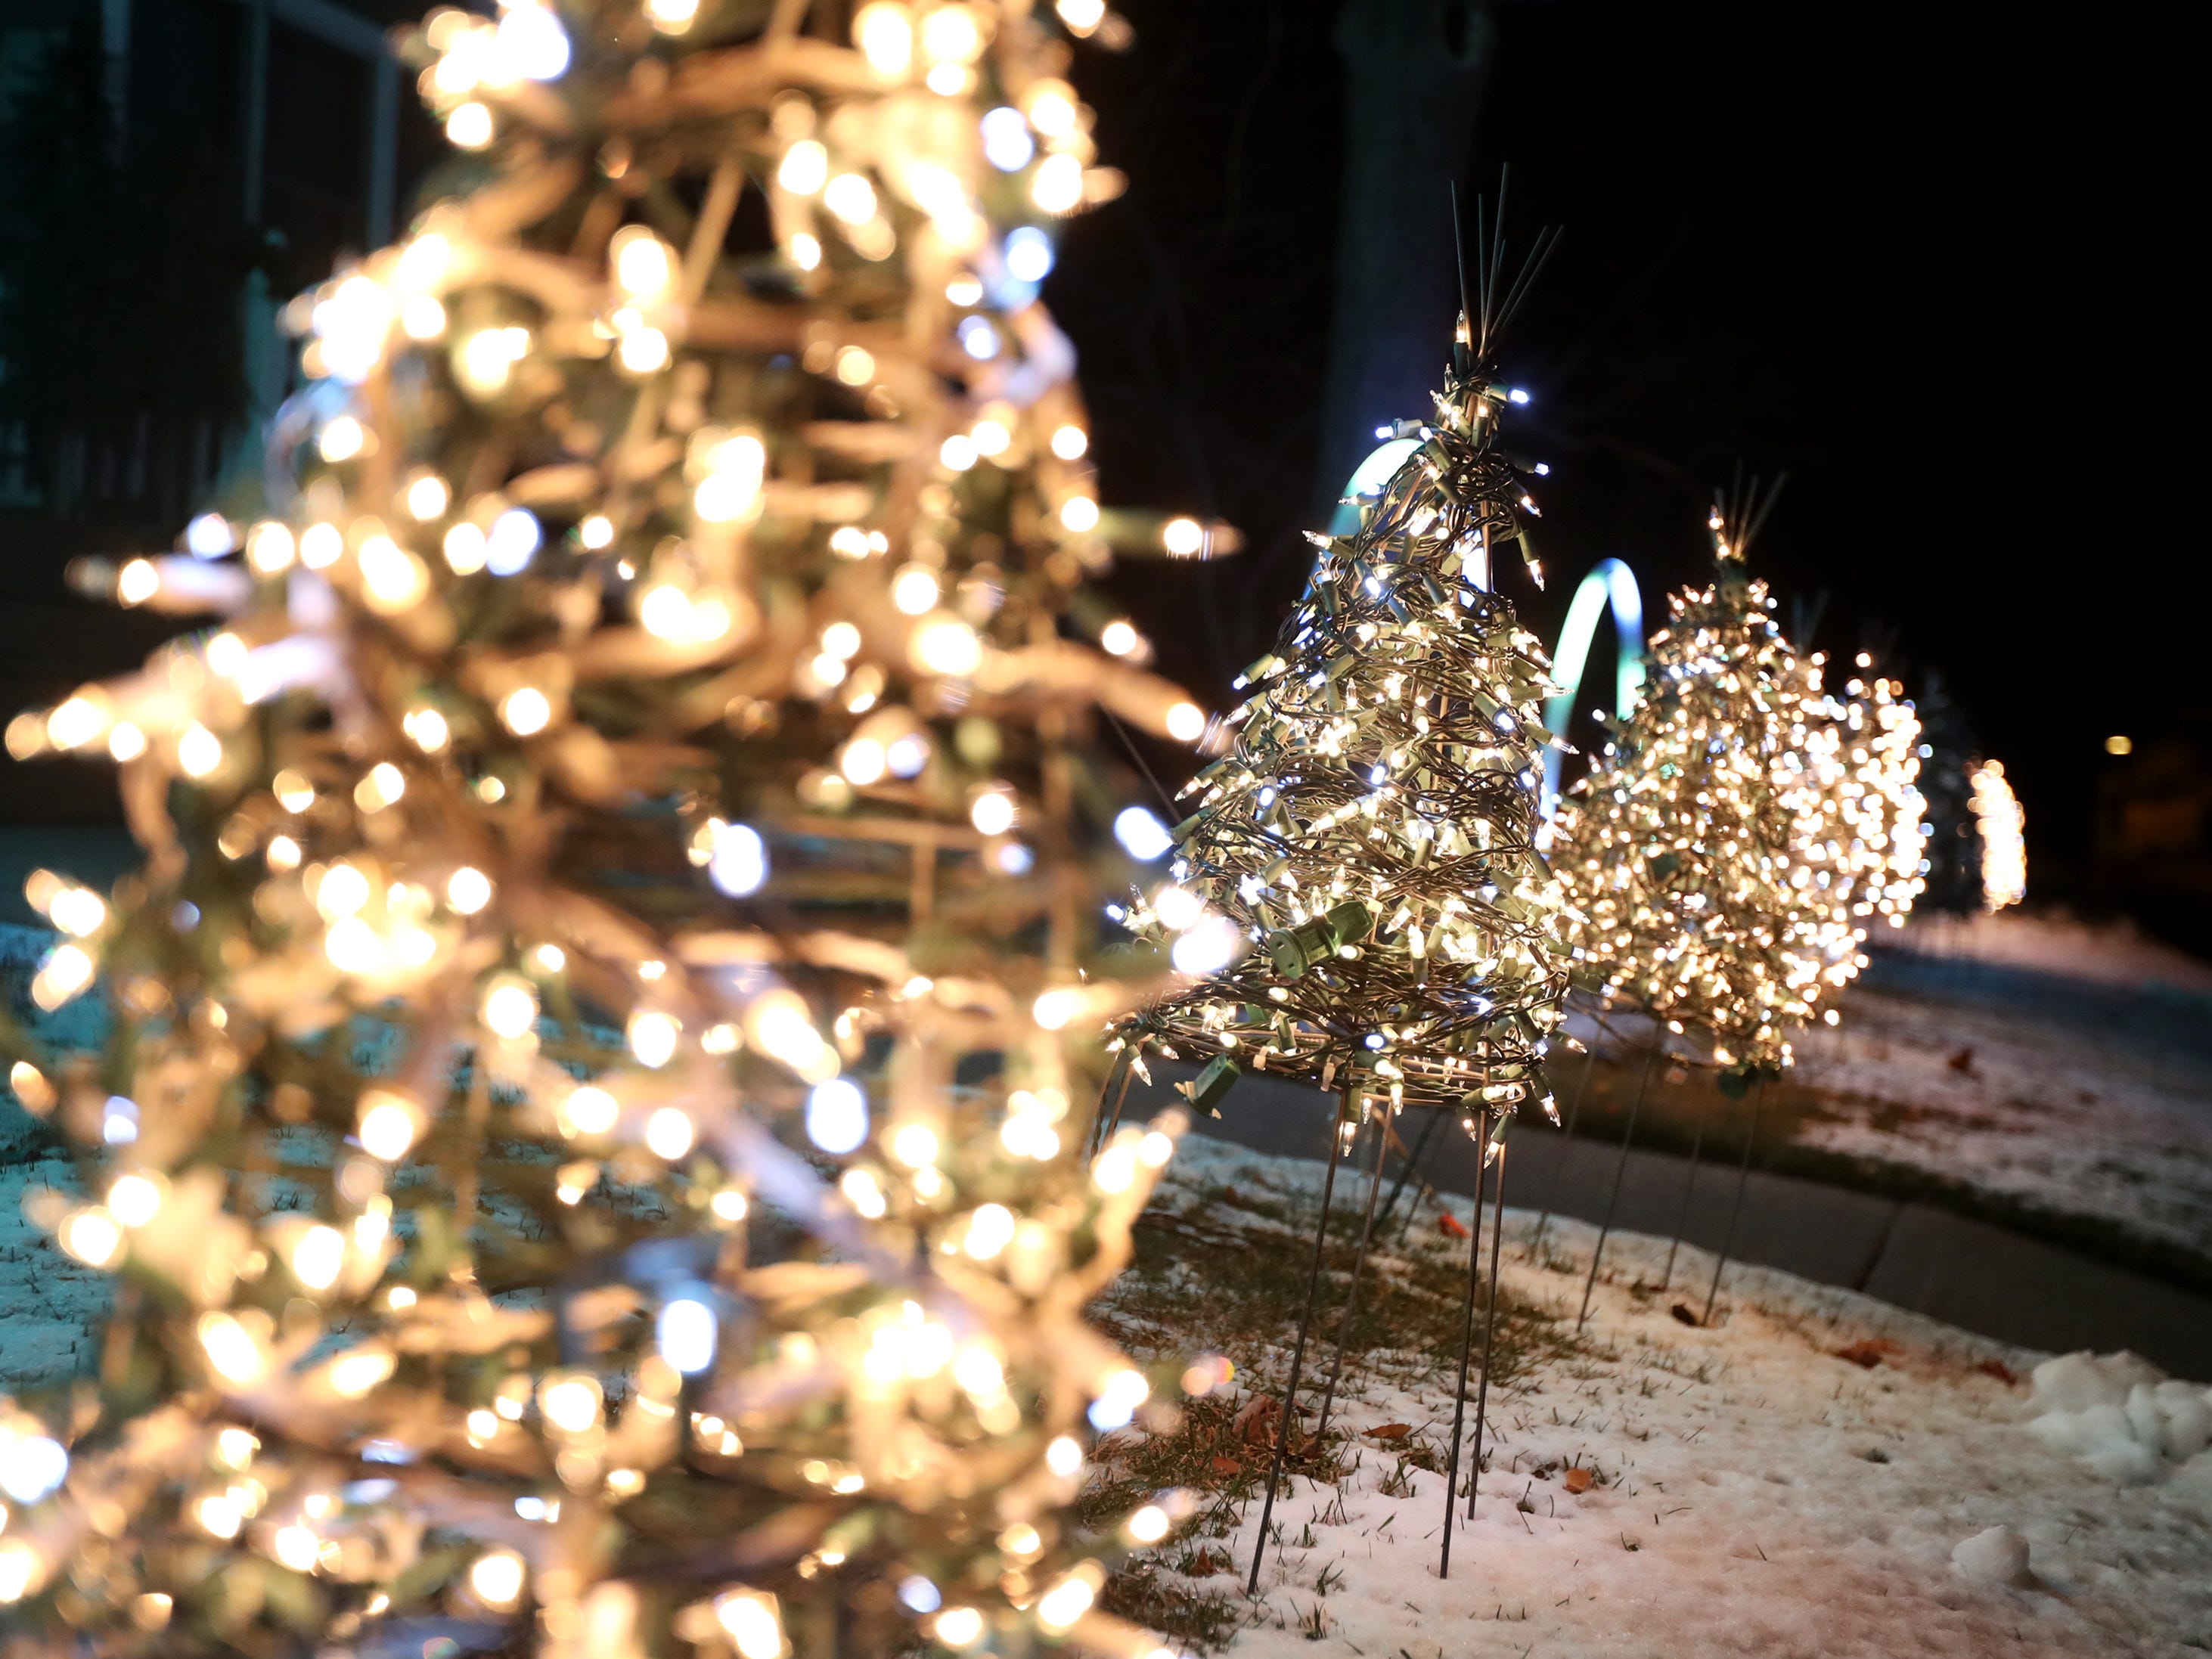 Christmas lights that are in sync with Christmas music are on display in front of a home on the 100 block of South Birch Street Wednesday Dec. 5, 2018, in Kimberly, Wis.